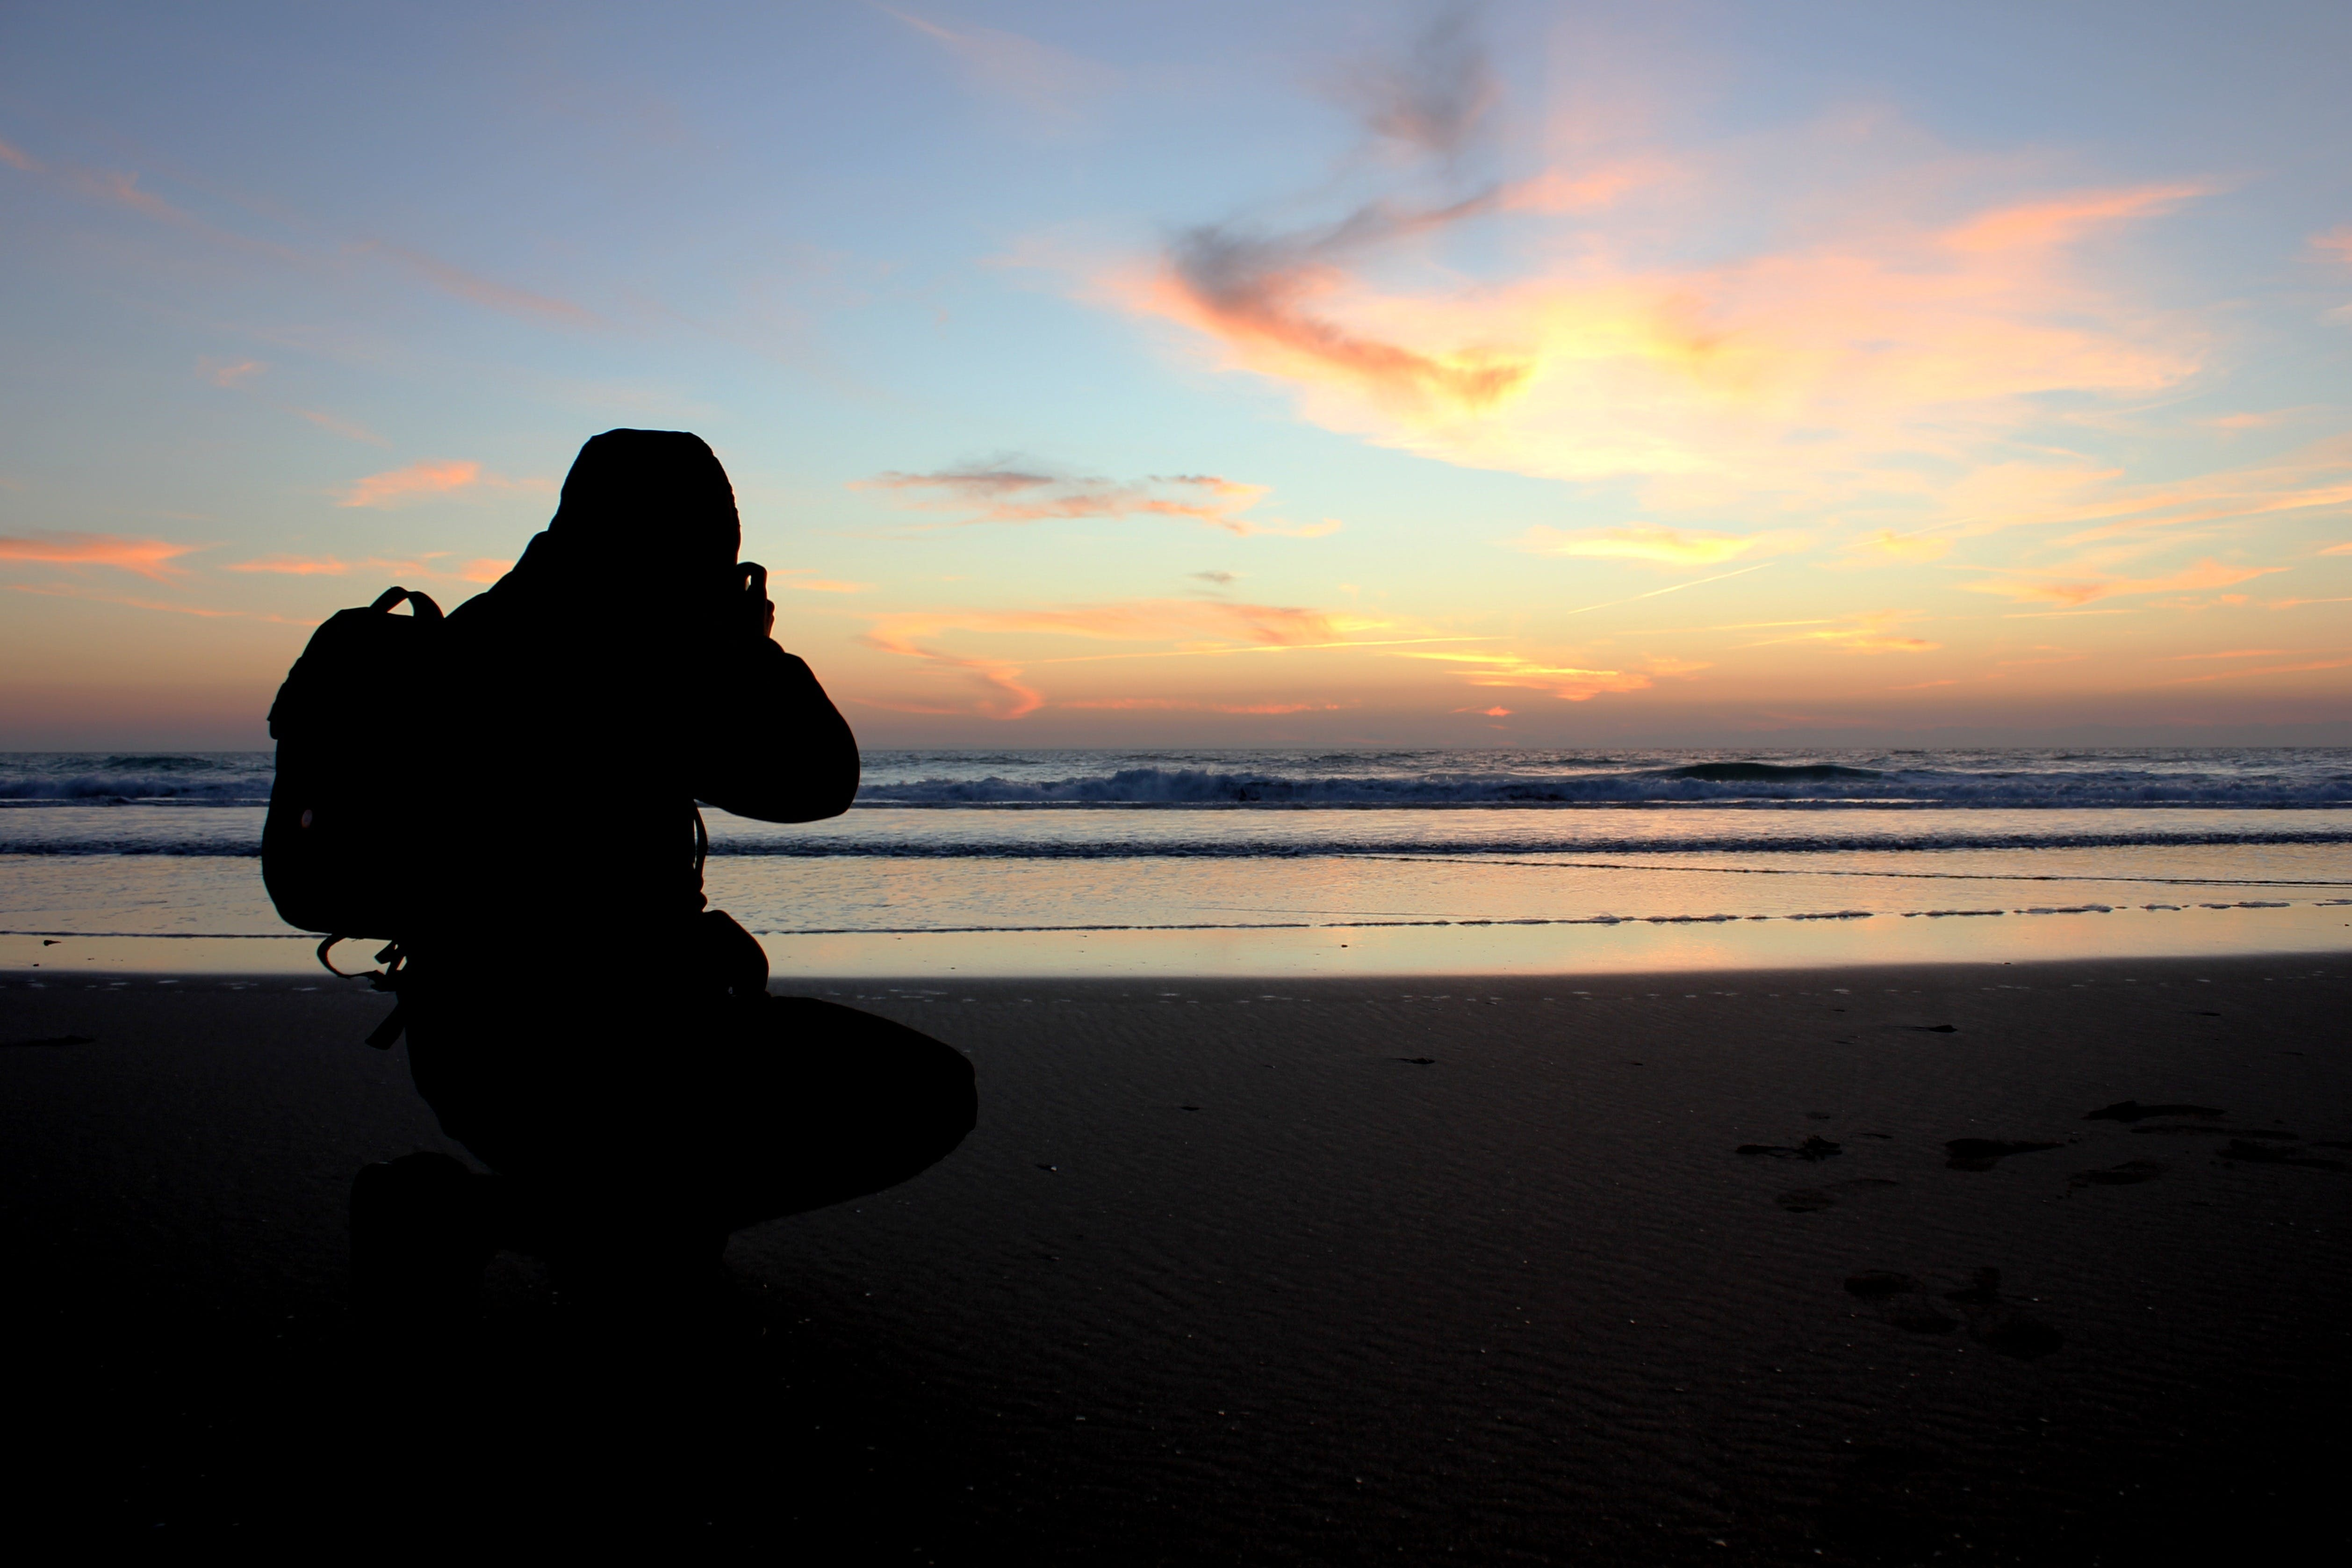 Silhouette of Person Taking Photo Near Ocean